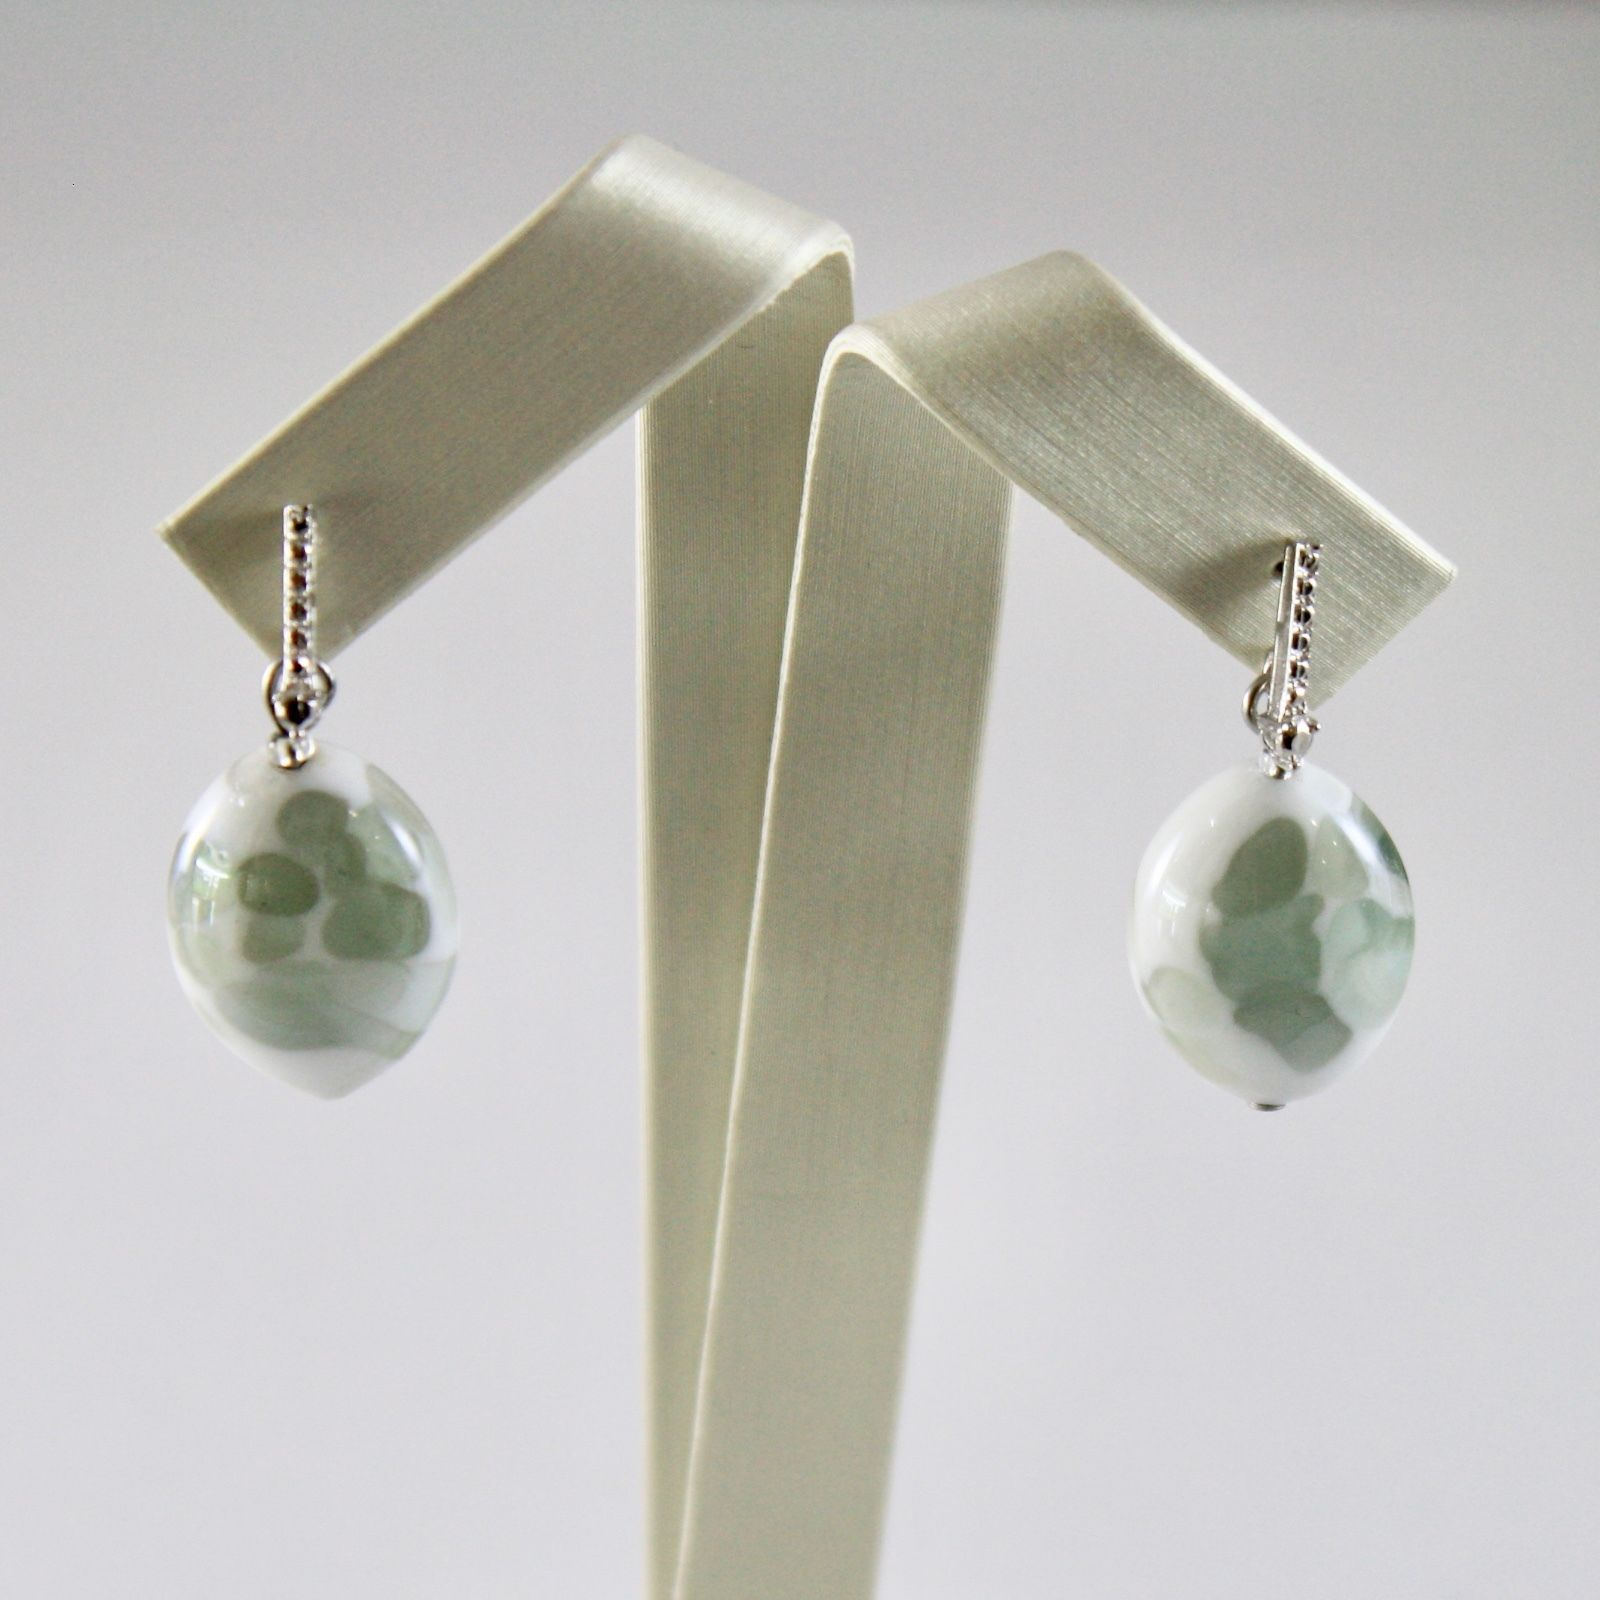 EARRINGS ANTICA MURRINA VENEZIA WITH MURANO GLASS OVAL GRAY AND WHITE